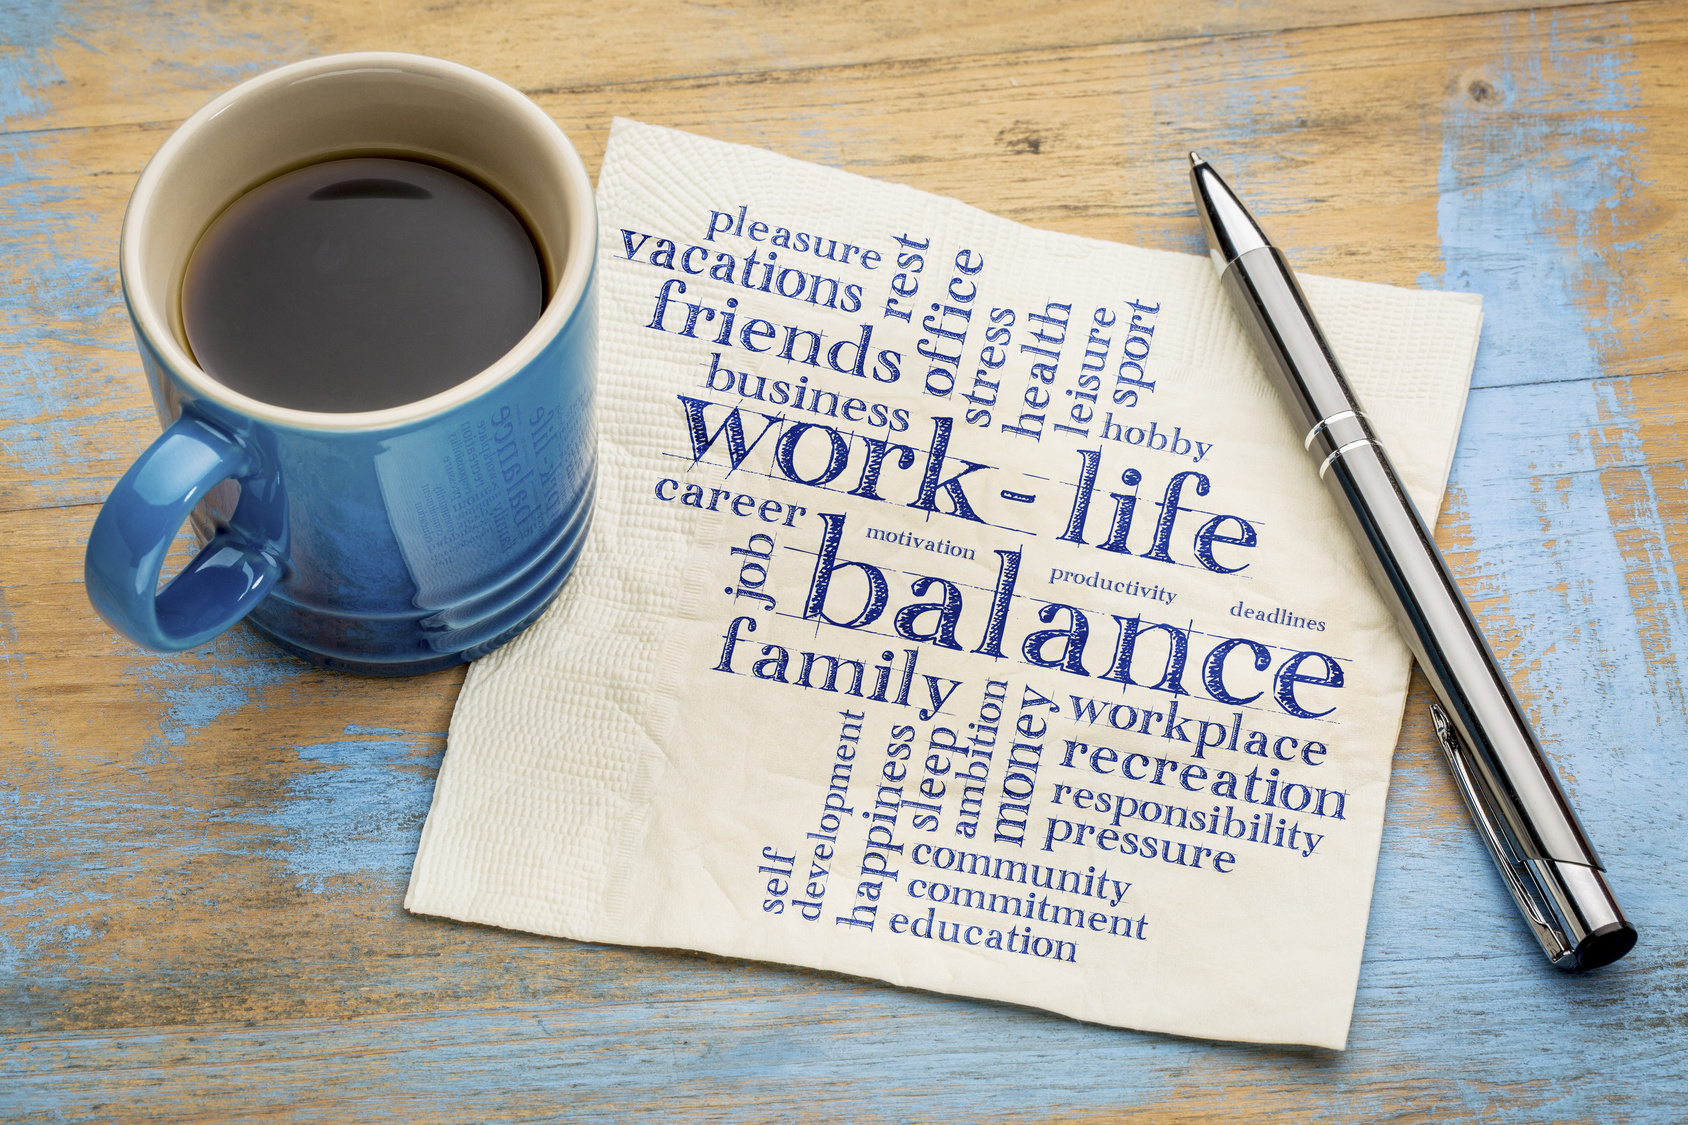 code of ethics, work life balance, commitment